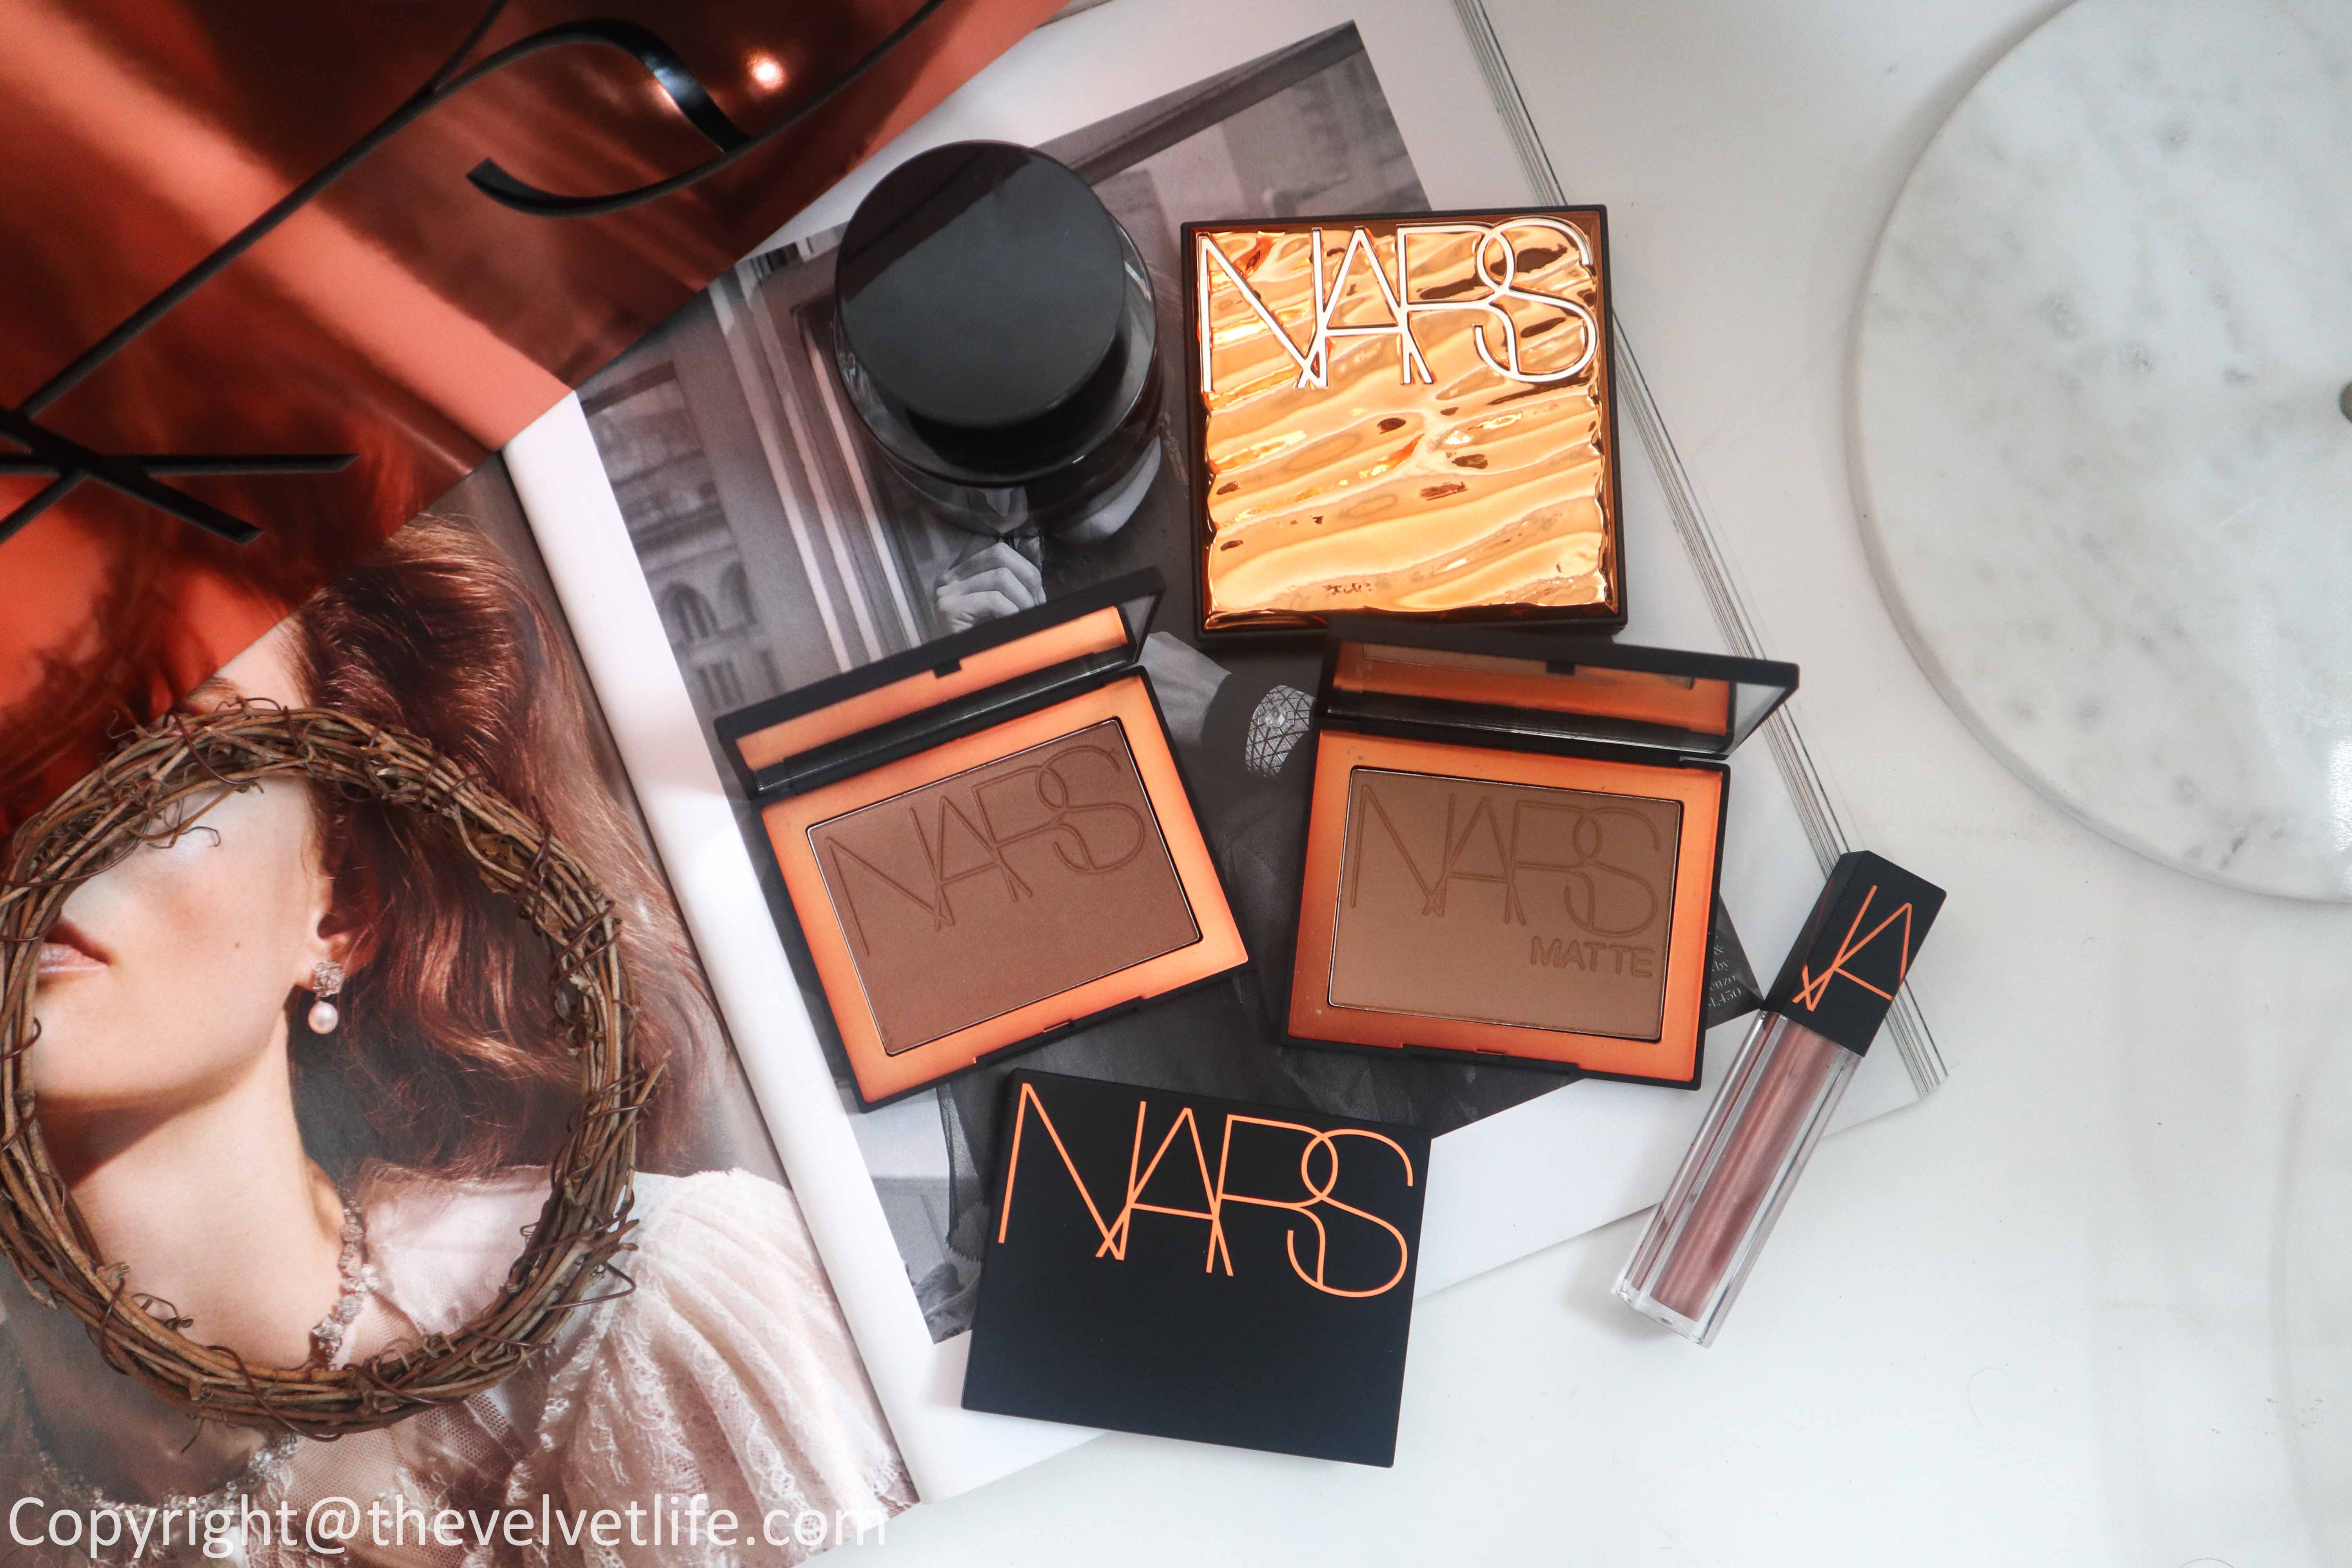 New Nars The Bronzing Collection review swatches Bronzing Powder, Matte Bronzing Powder, Paradise Found Bronzing Powder, and Oil-Infused Lip Tints